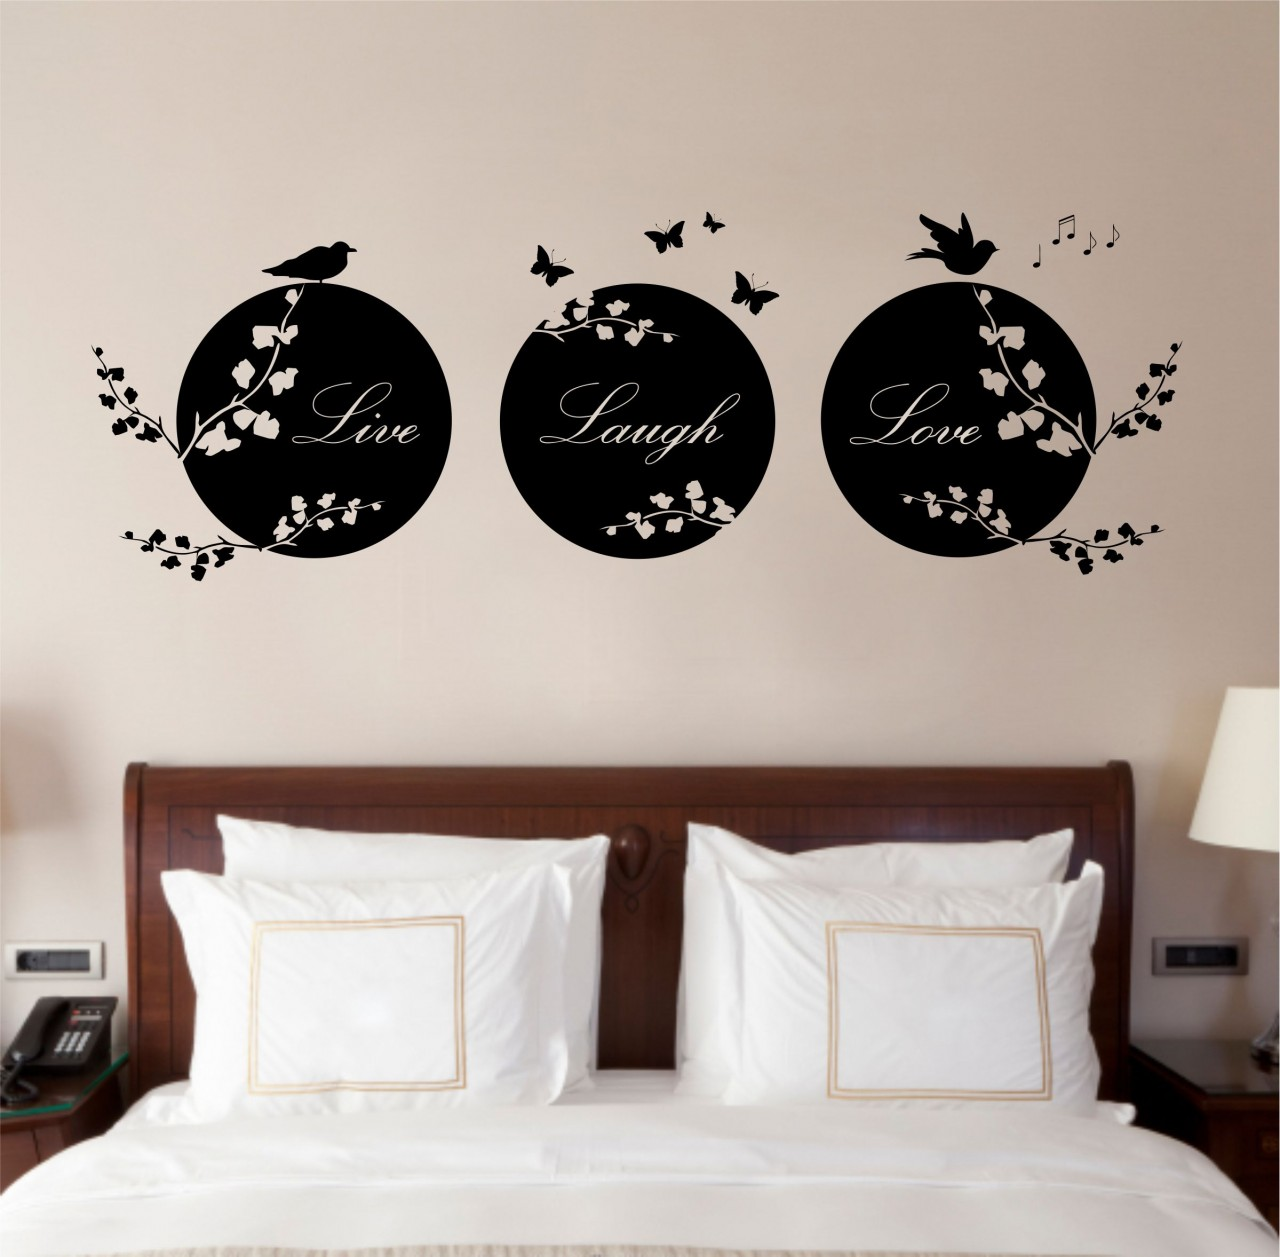 Bedroom Stencils Vinyl Wall Art Vinyl Wall Art Craft Room Vinyl Wall